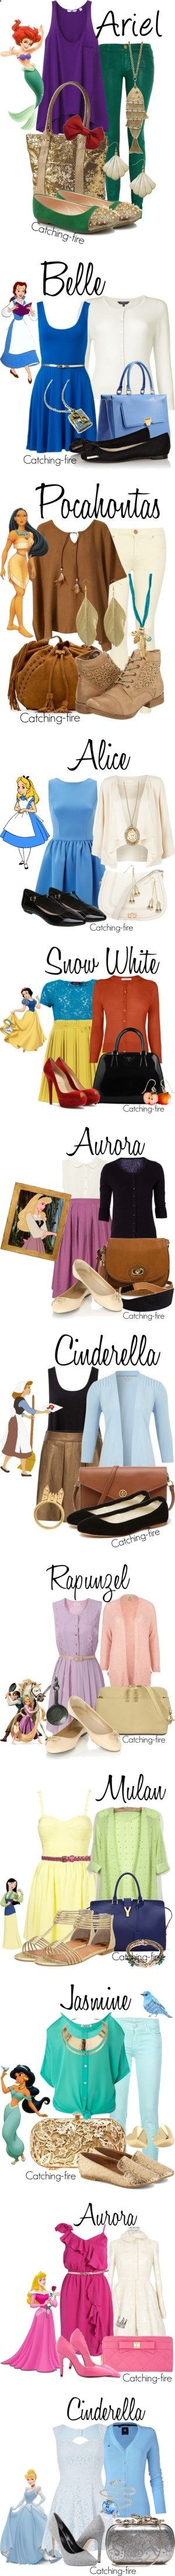 So cute! Disney inspired outfits!